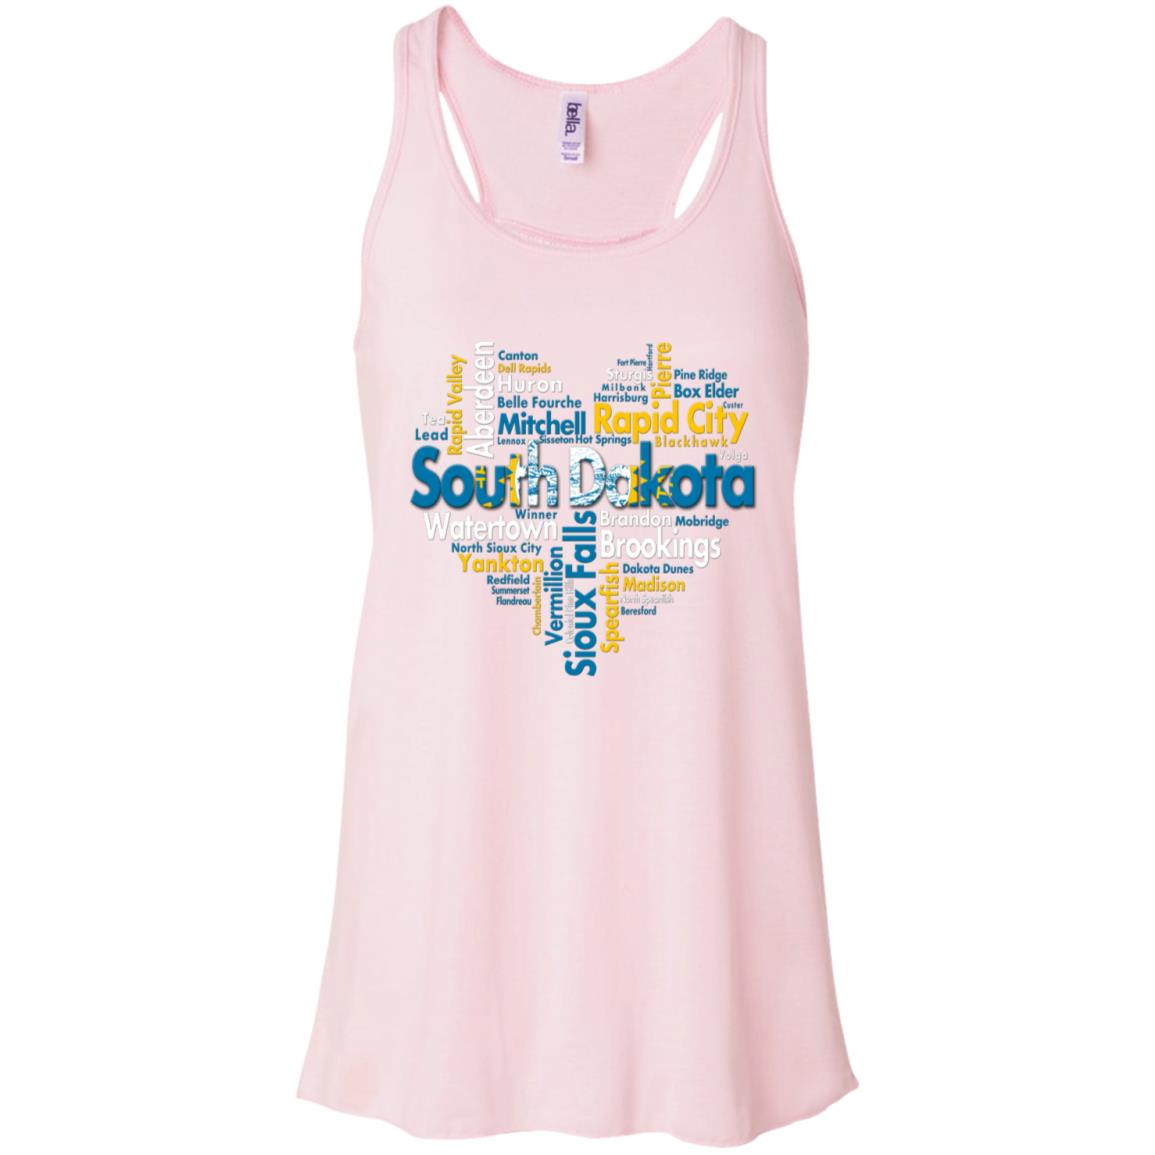 South Dakota City Heart Tank Top